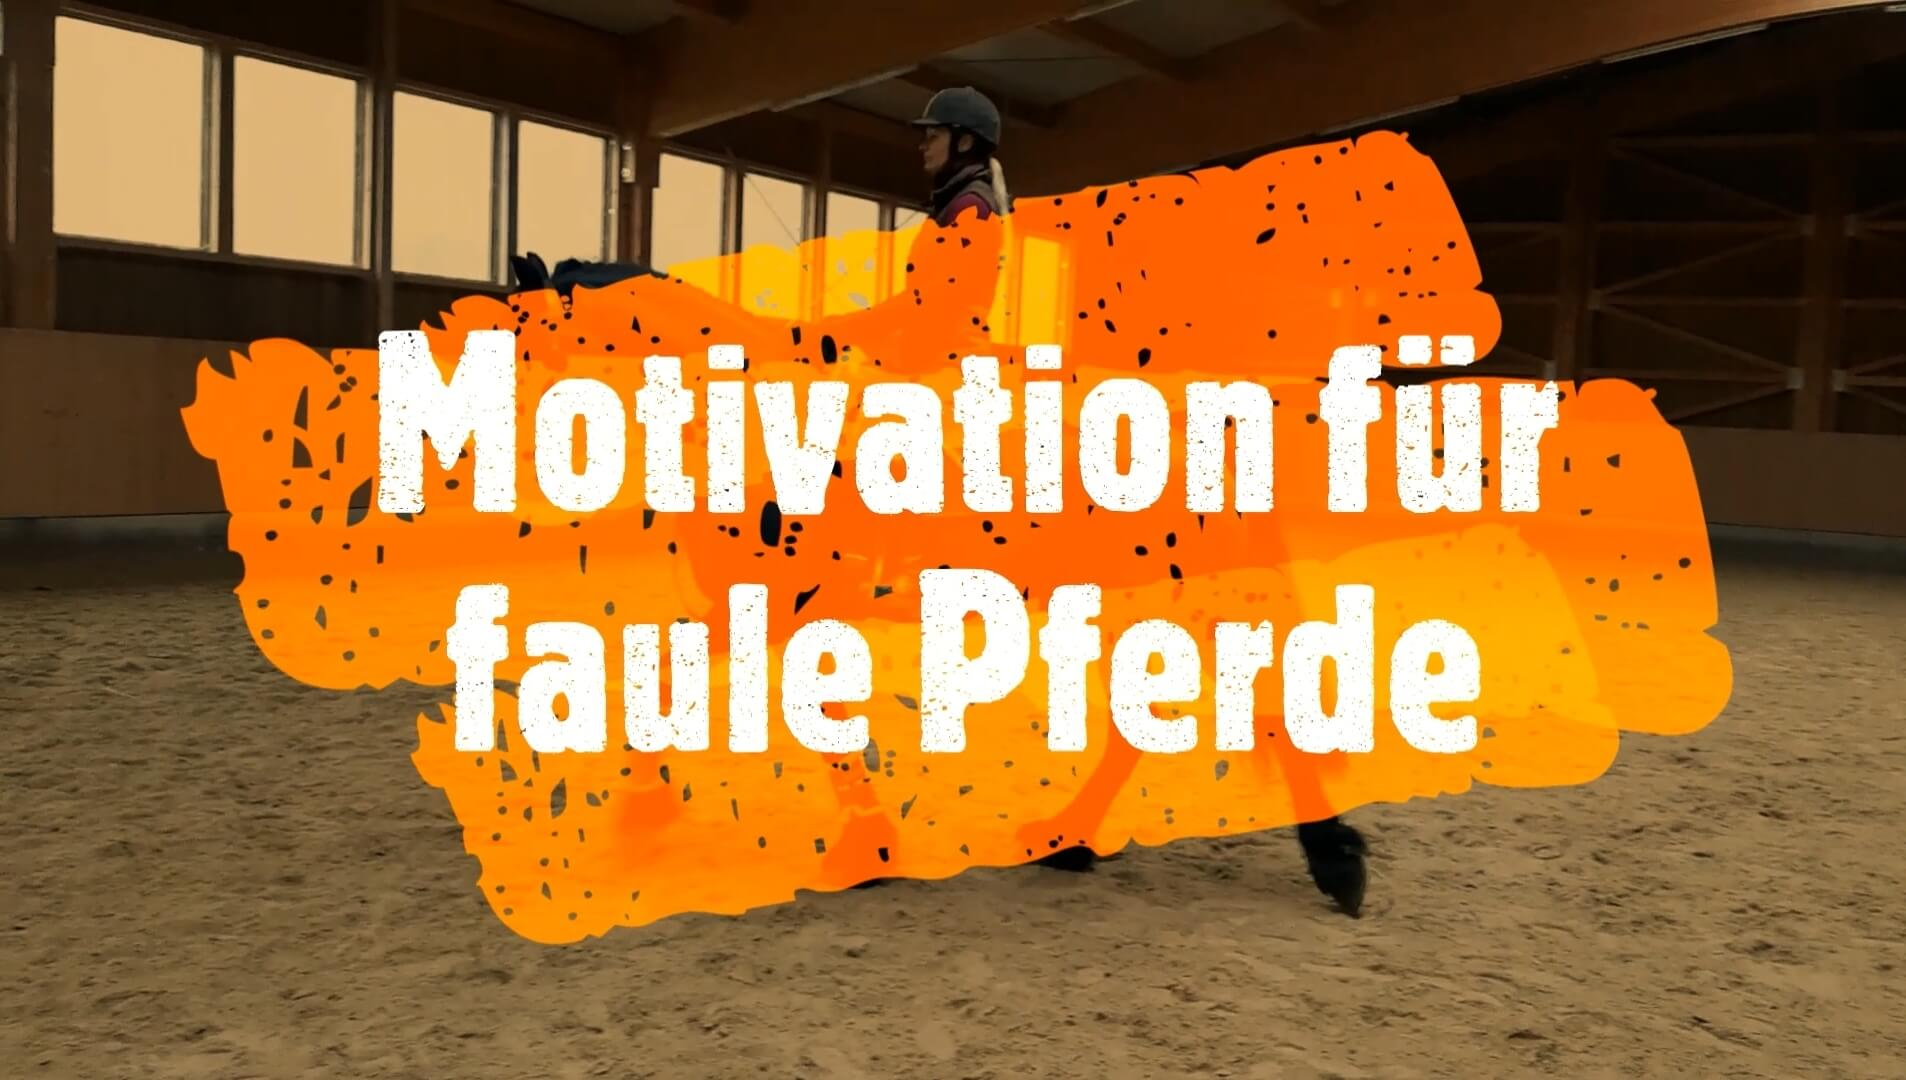 Motivation für faule Pferde